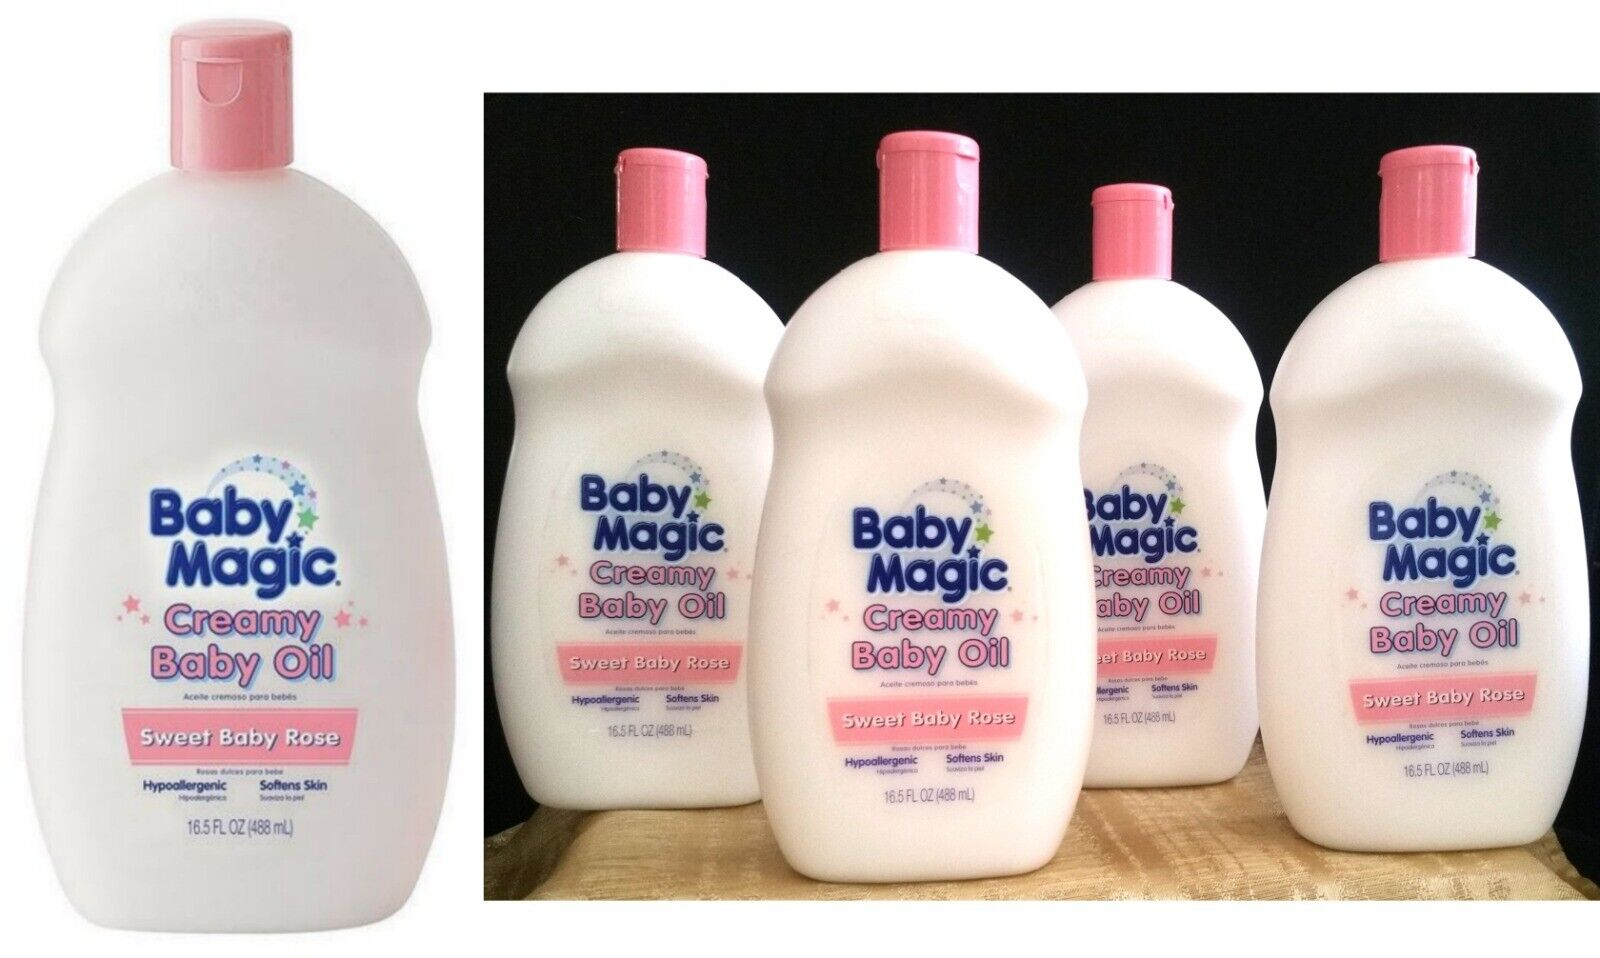 5 Baby Magic Creamy Baby Oil Sweet Baby Rose Lotion Big 16.5